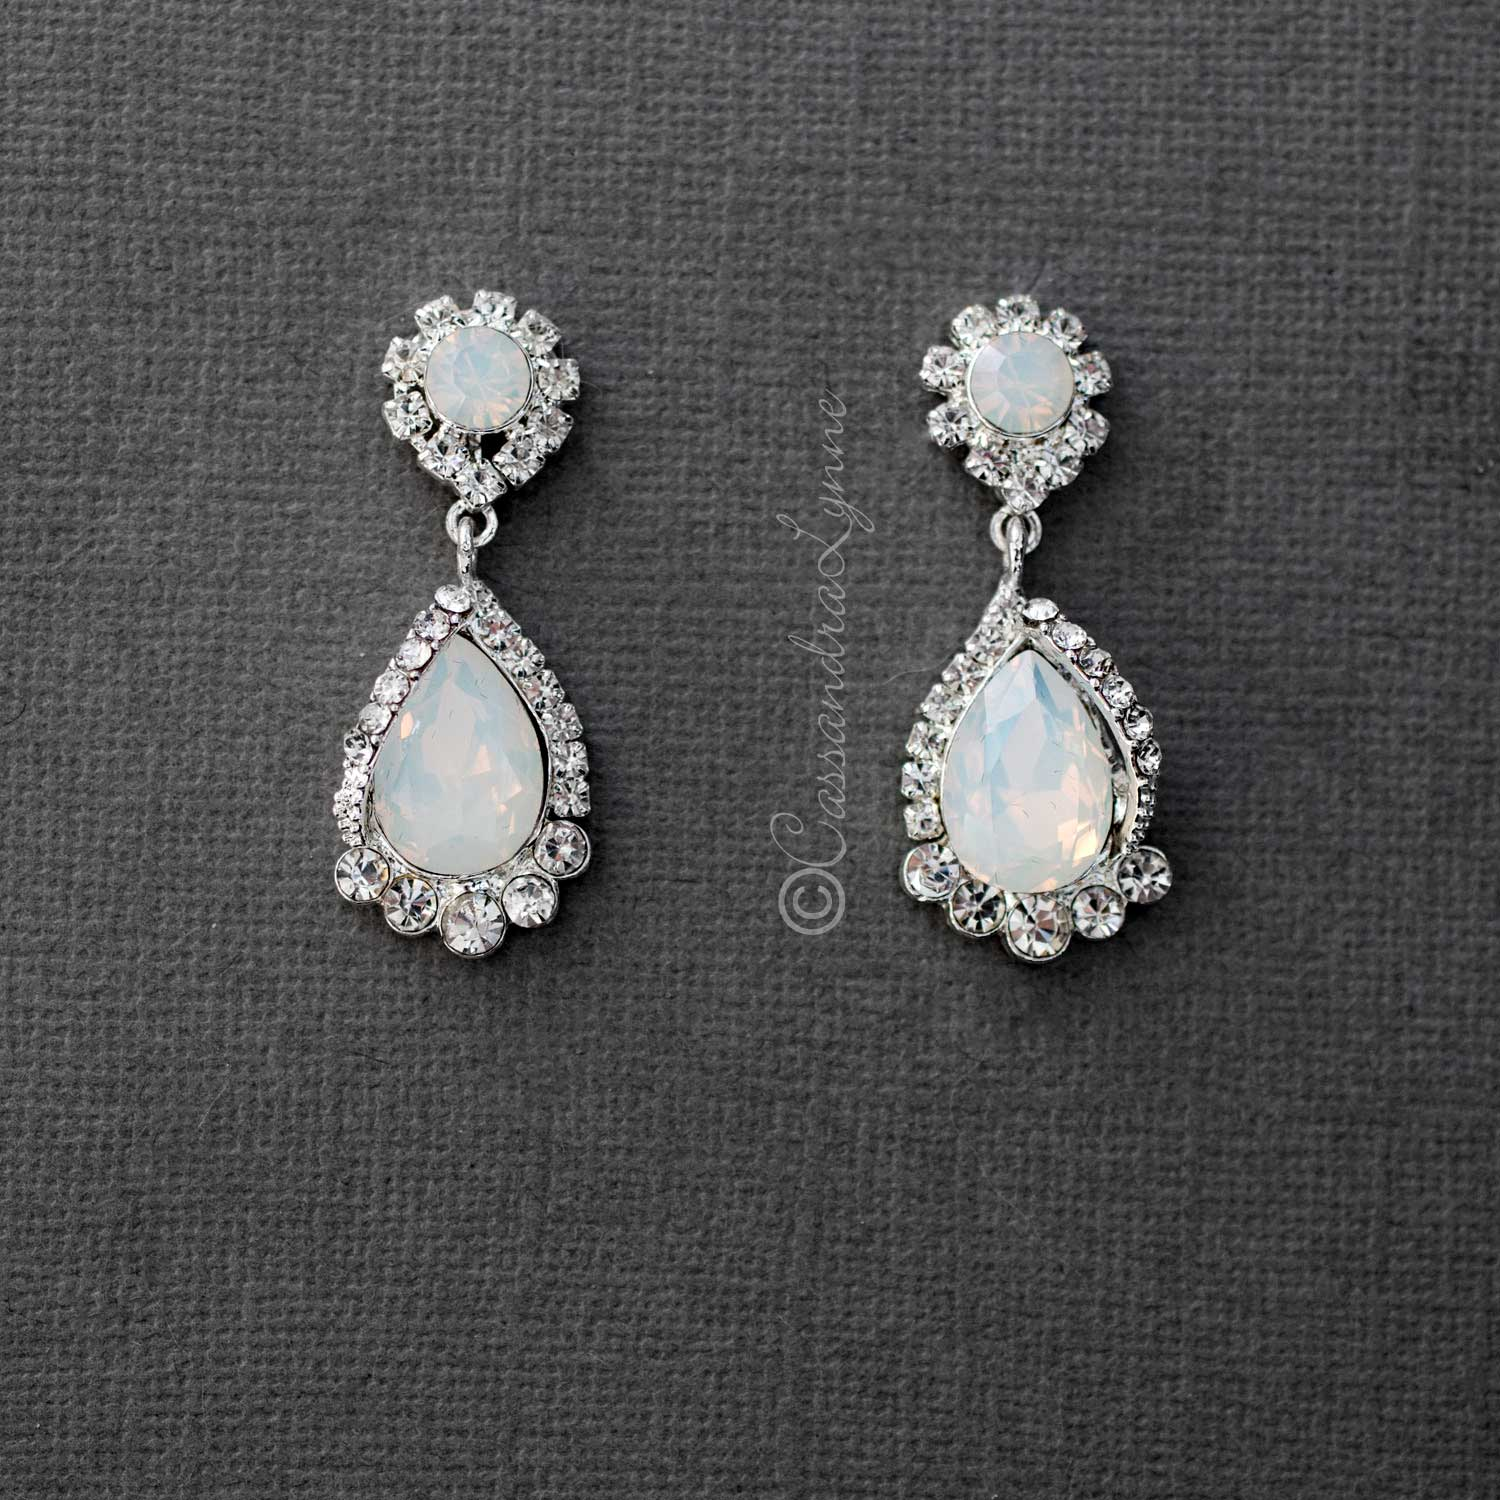 Silver Wedding Earrings with Opal Moonstone